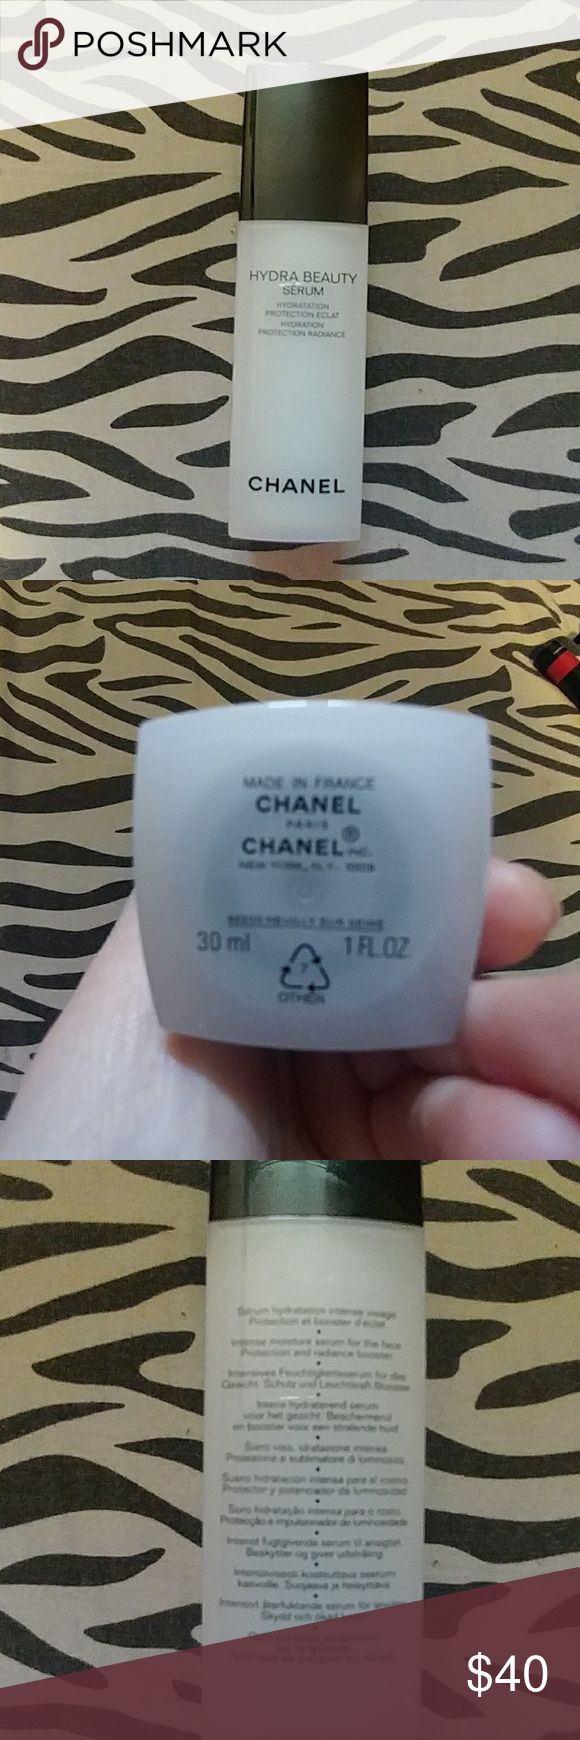 Chanel hydra beauty serum Never used. Brand new. Gives radiance & hydration to the skin. CHANEL Makeup Luminizer